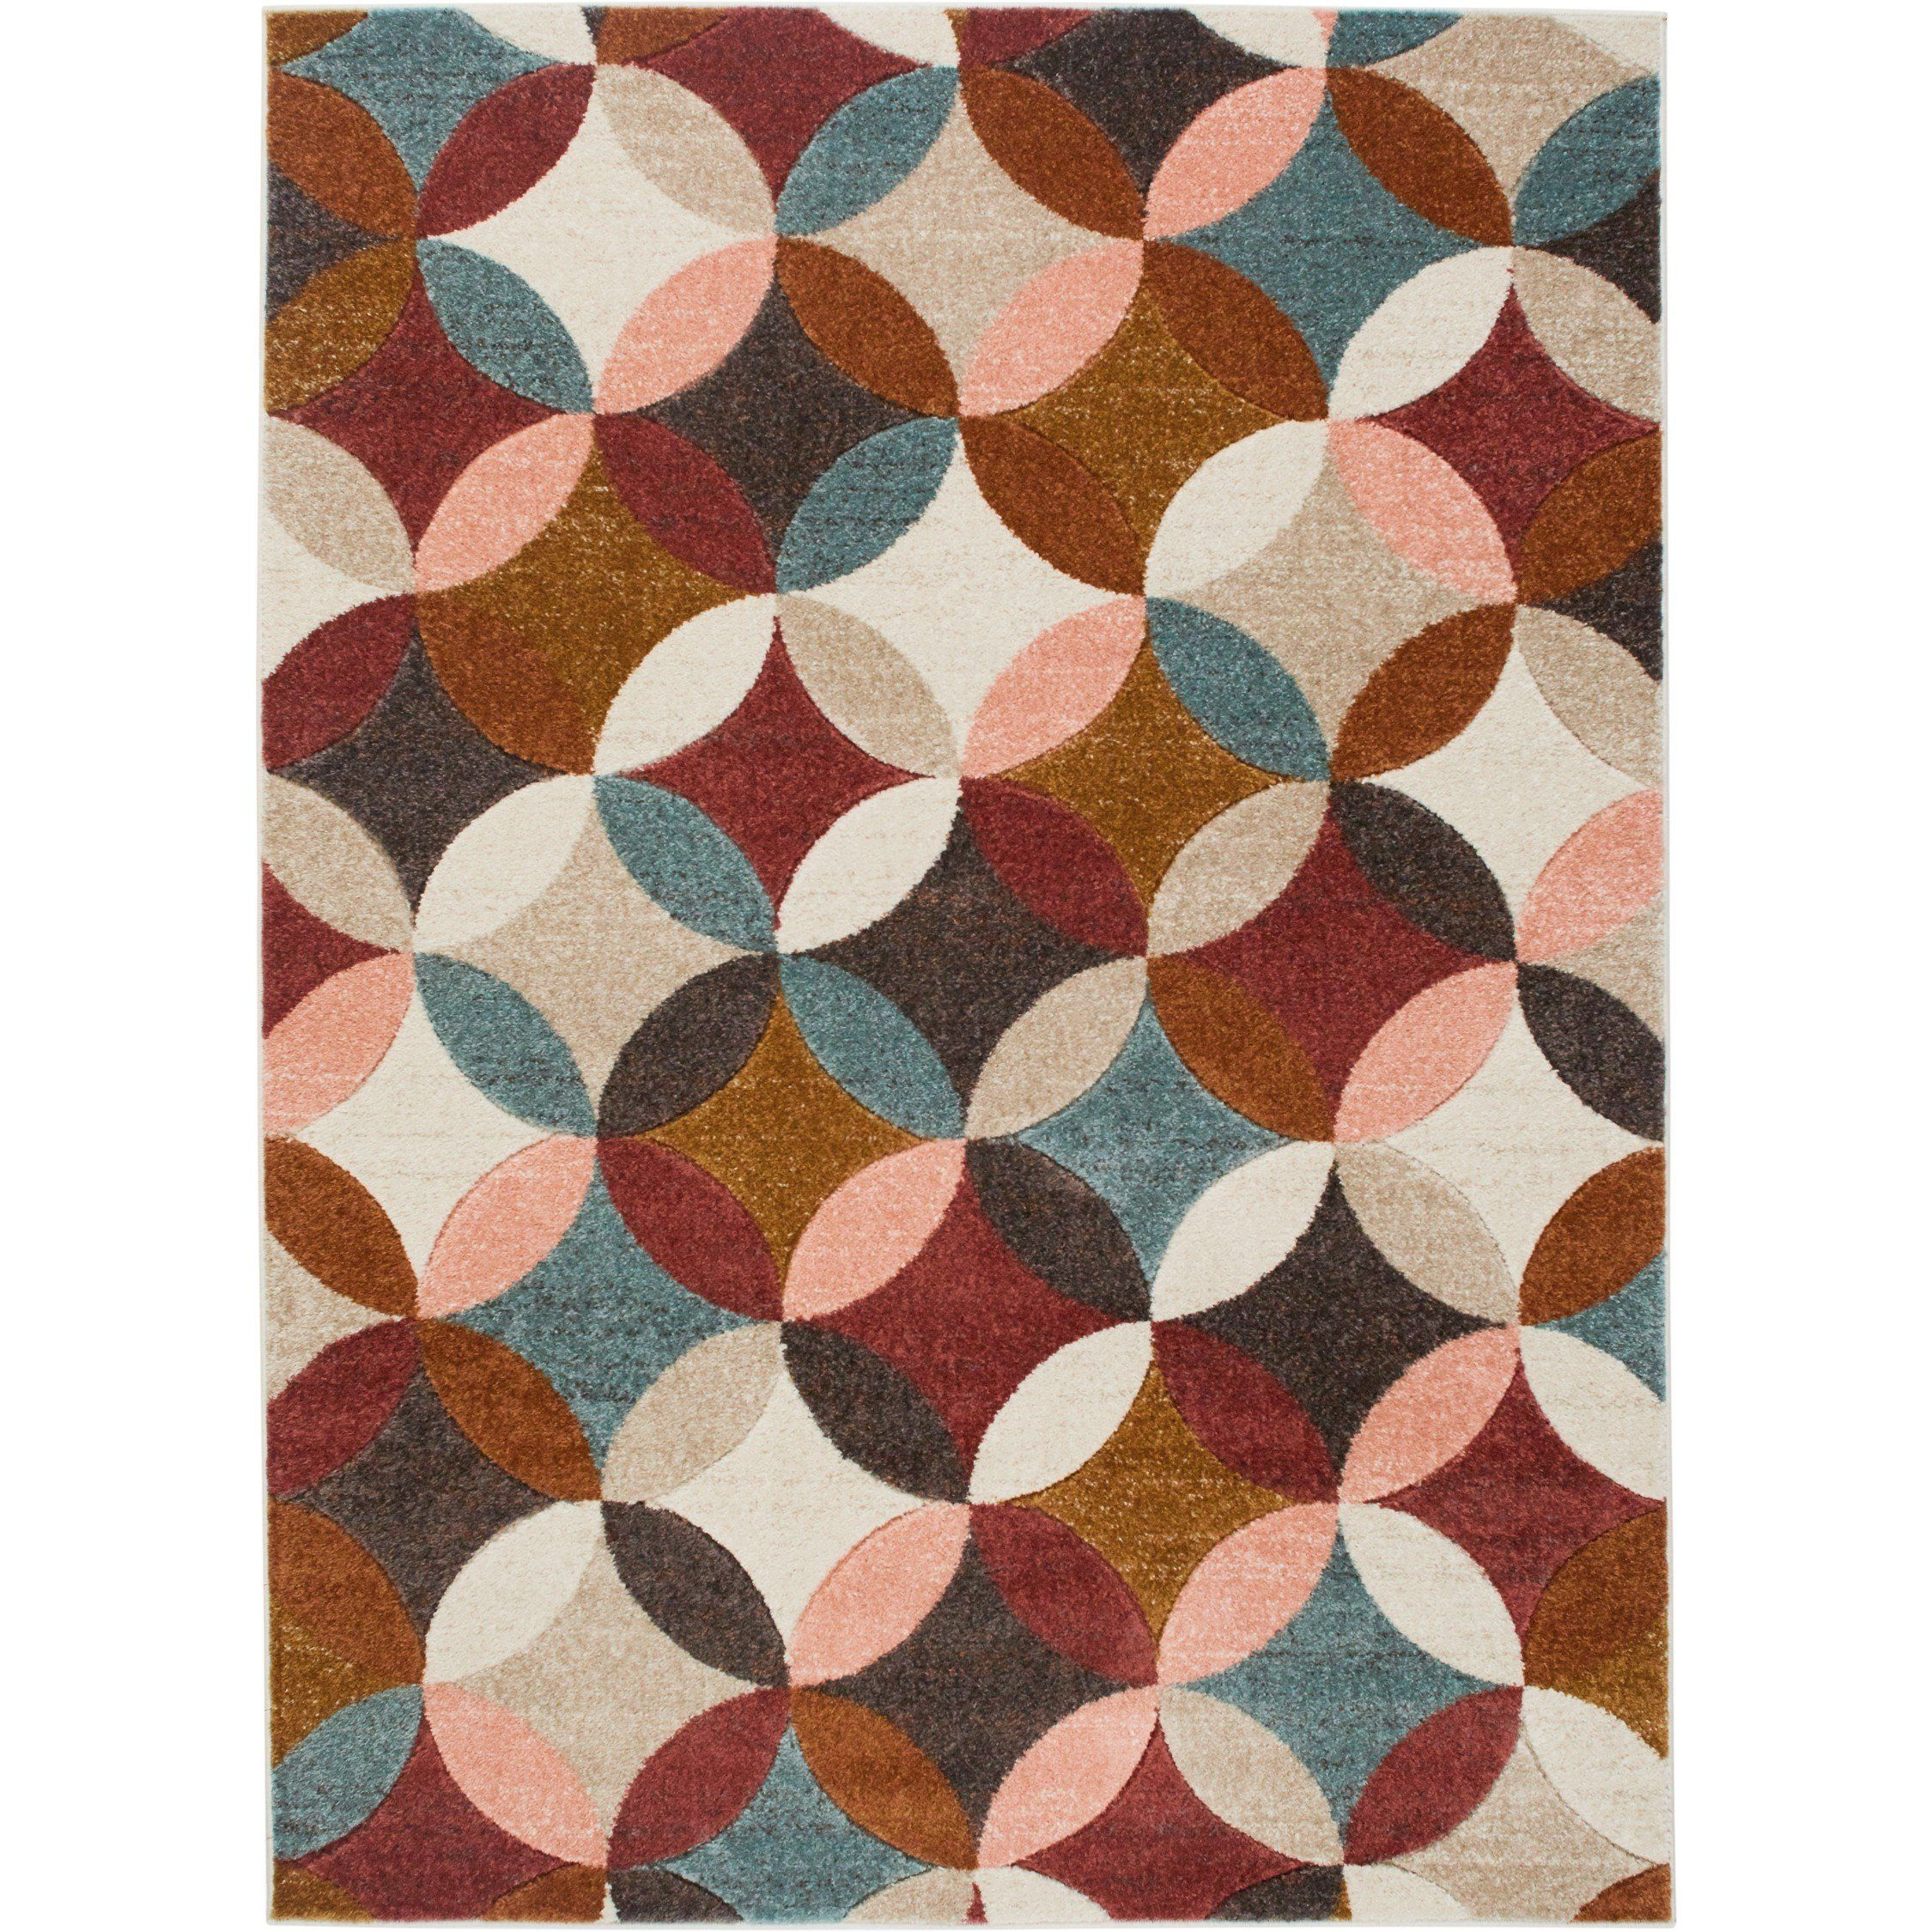 Tribeca Area Rug G2197 991 Home Dynamix Area Rugs Indoor Area Rugs